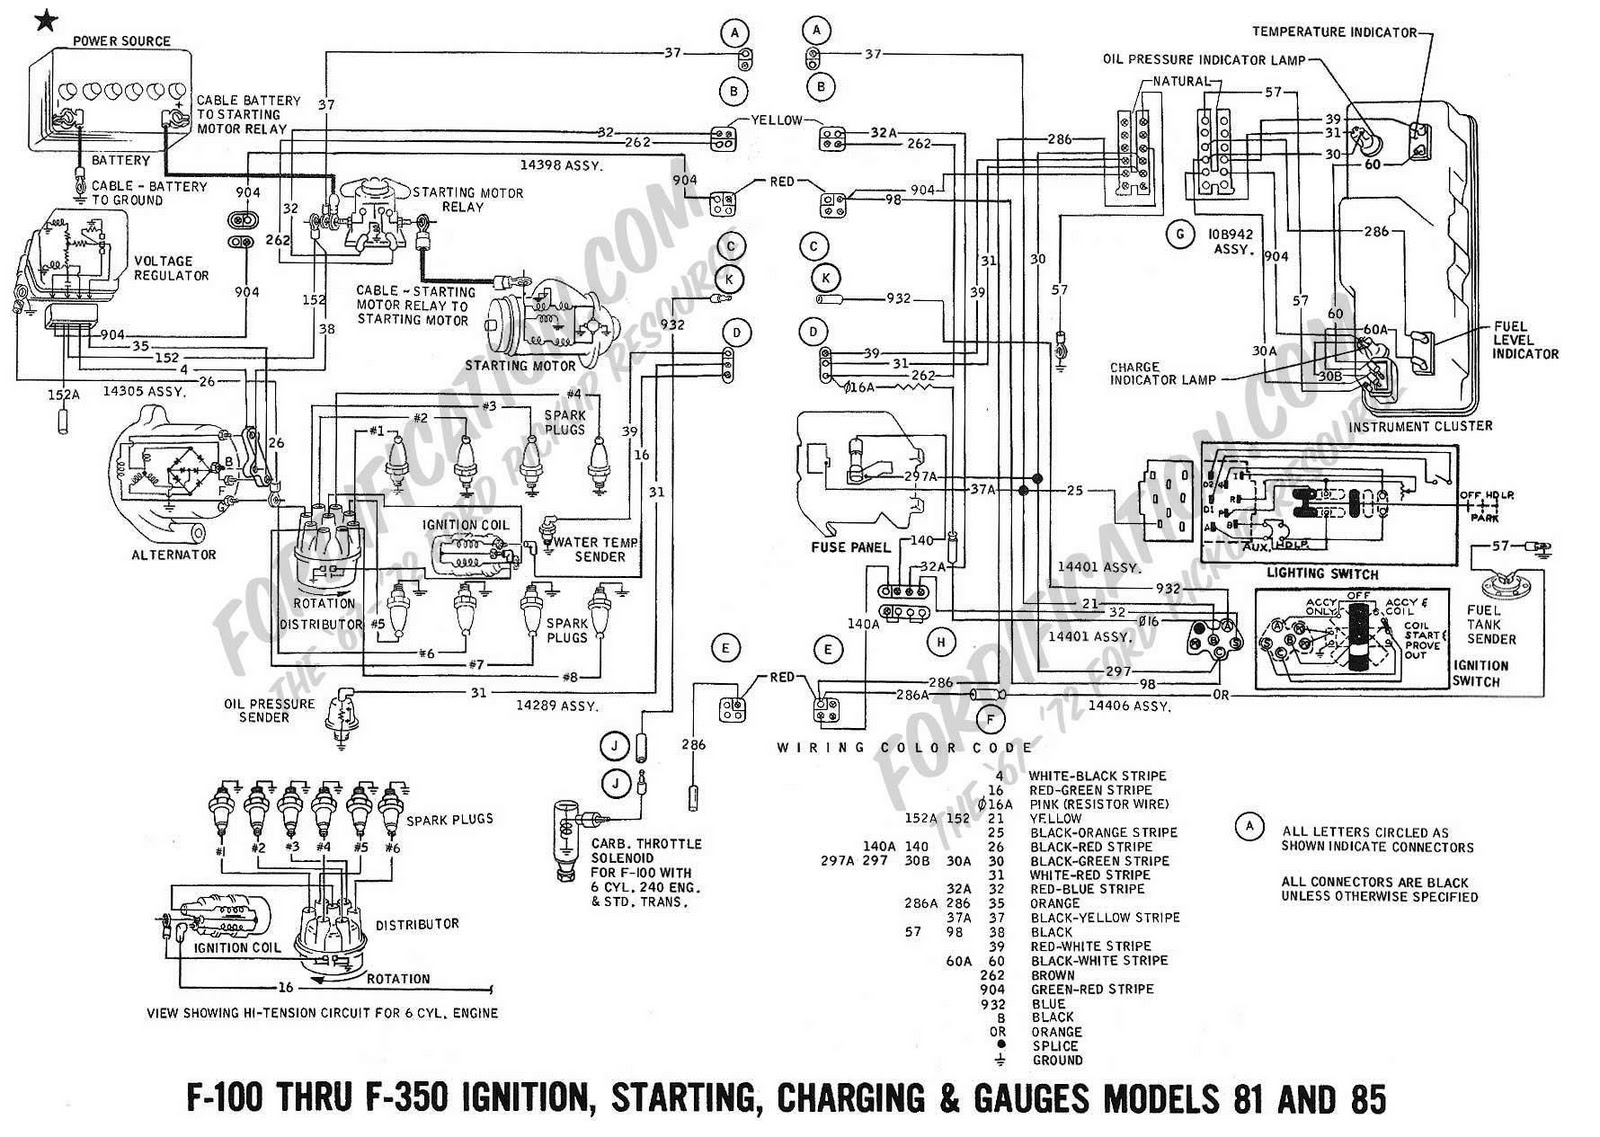 small resolution of 1969 ford f100 f350 ignition starting charging and 1971 camaro wiper wiring 1969 camaro wiring schematic